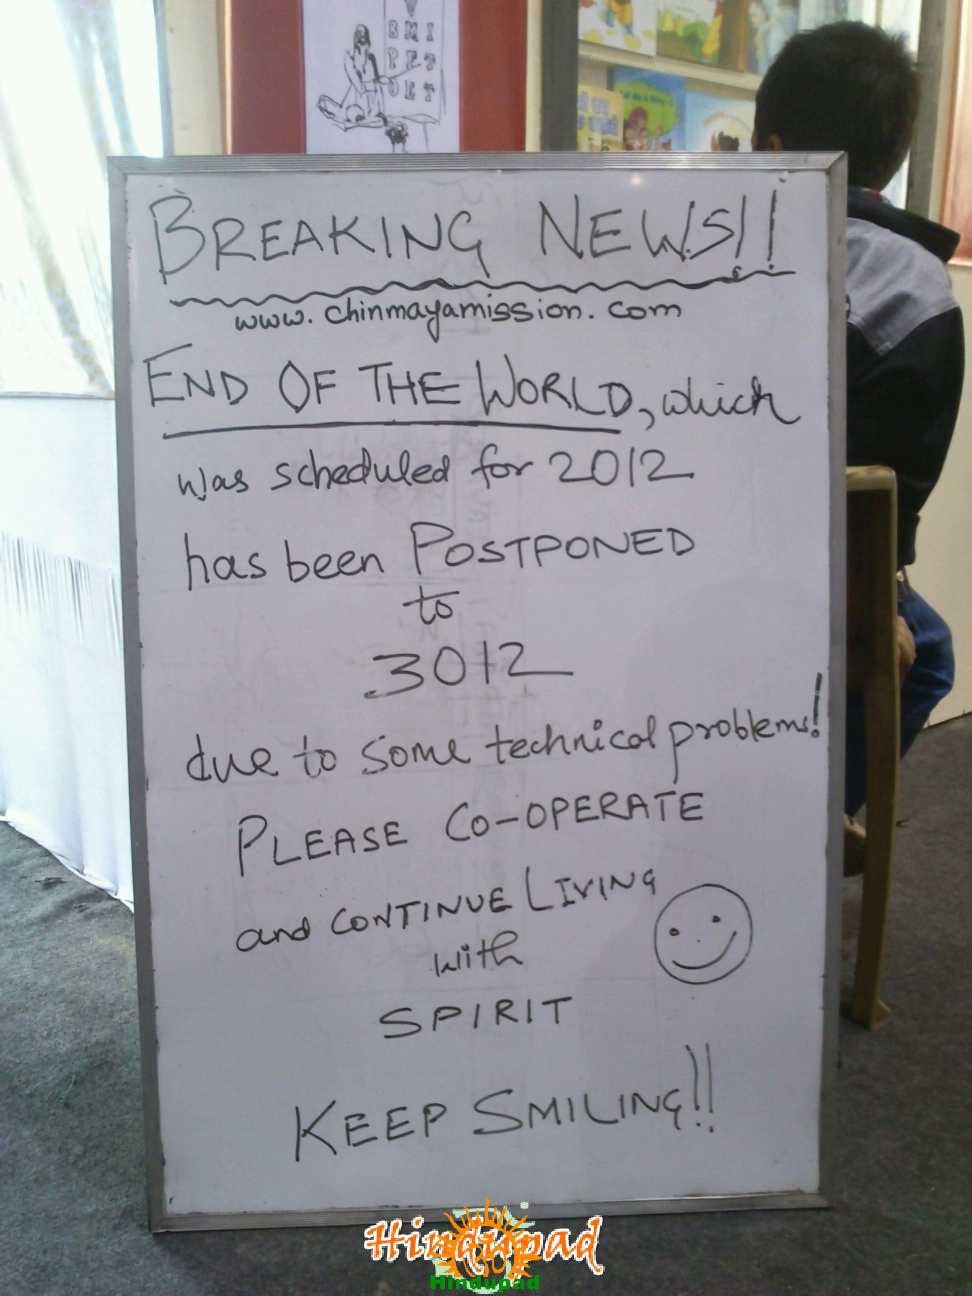 end of world in 2012